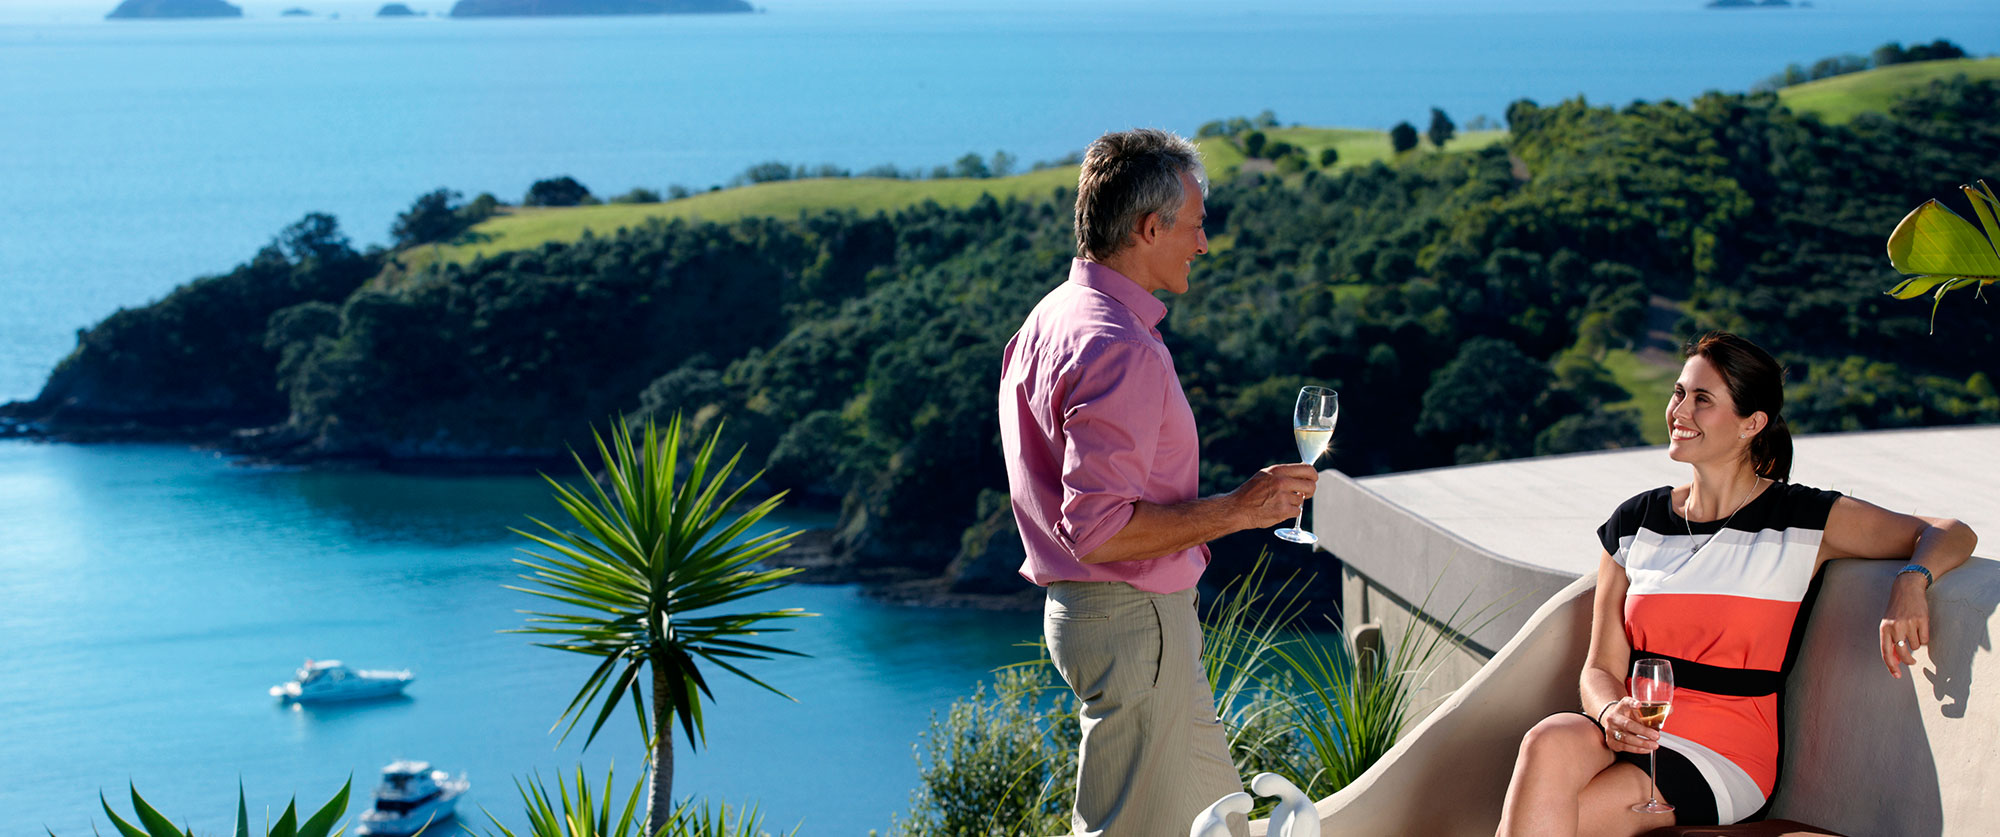 12 Day New Zealand Package - Honeymoon Vacation - Adventure - New Zealand Honeymoon Package